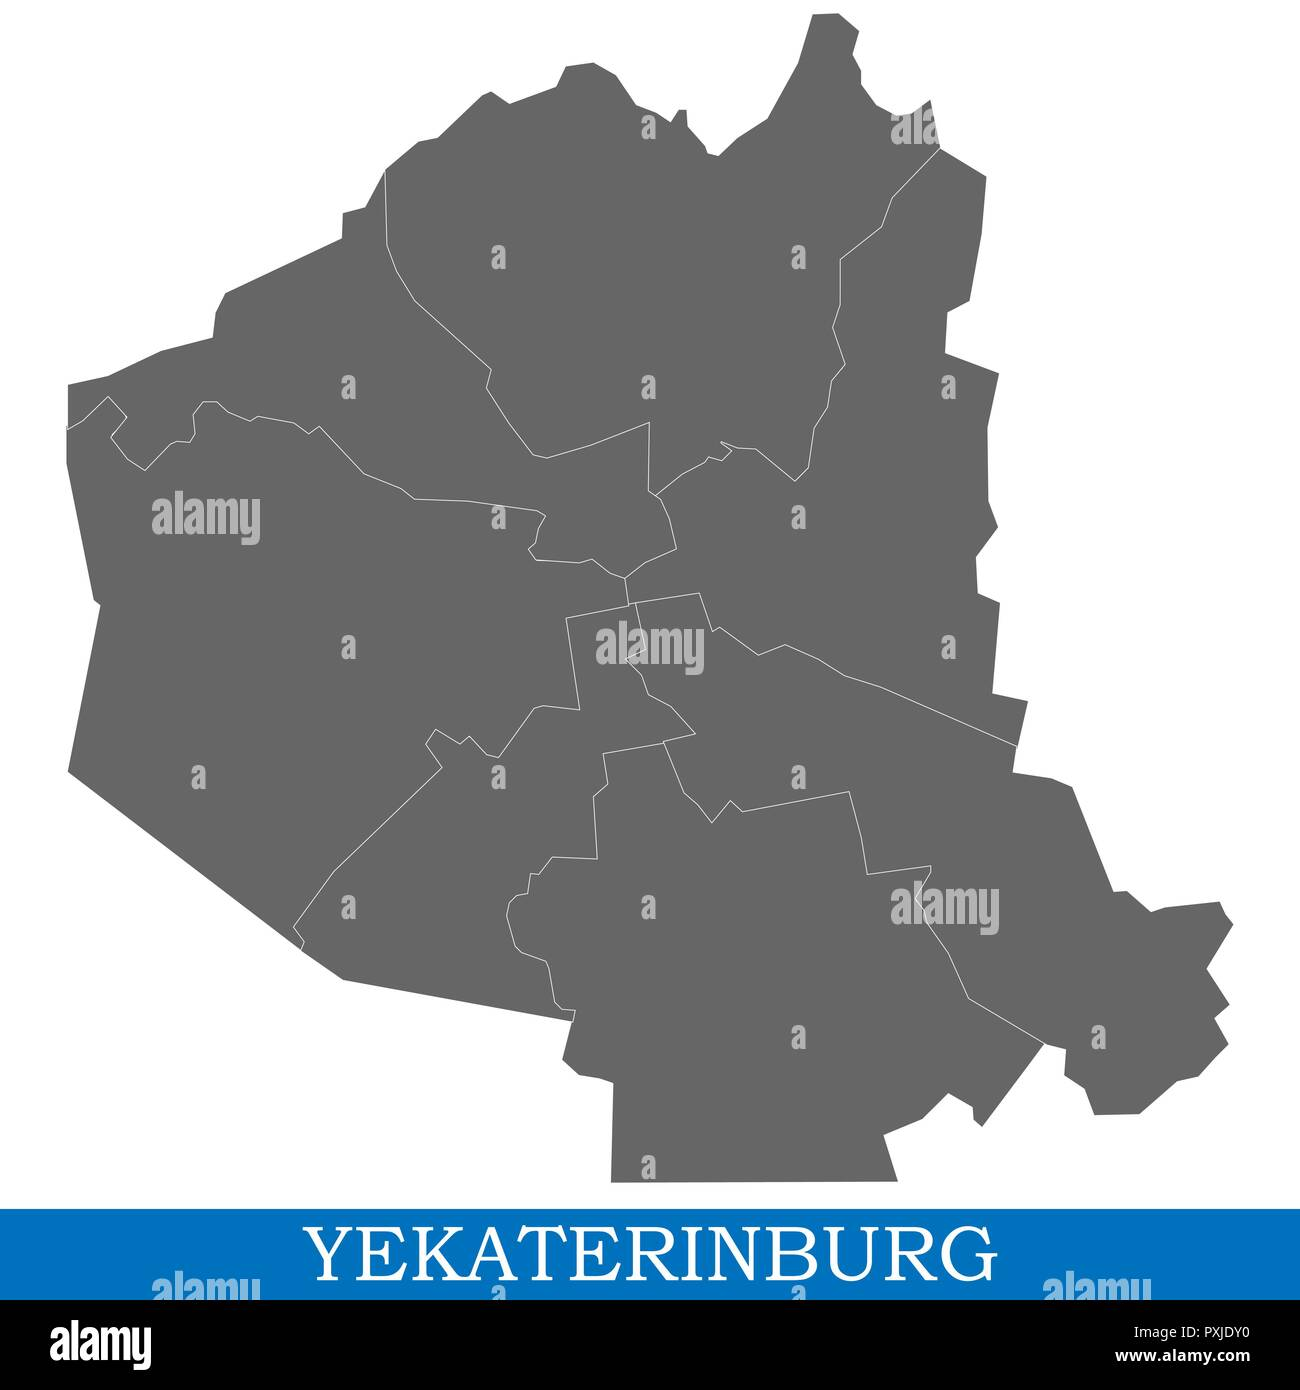 High Quality Map Of Yekaterinburg Is A City Of Russia With Borders